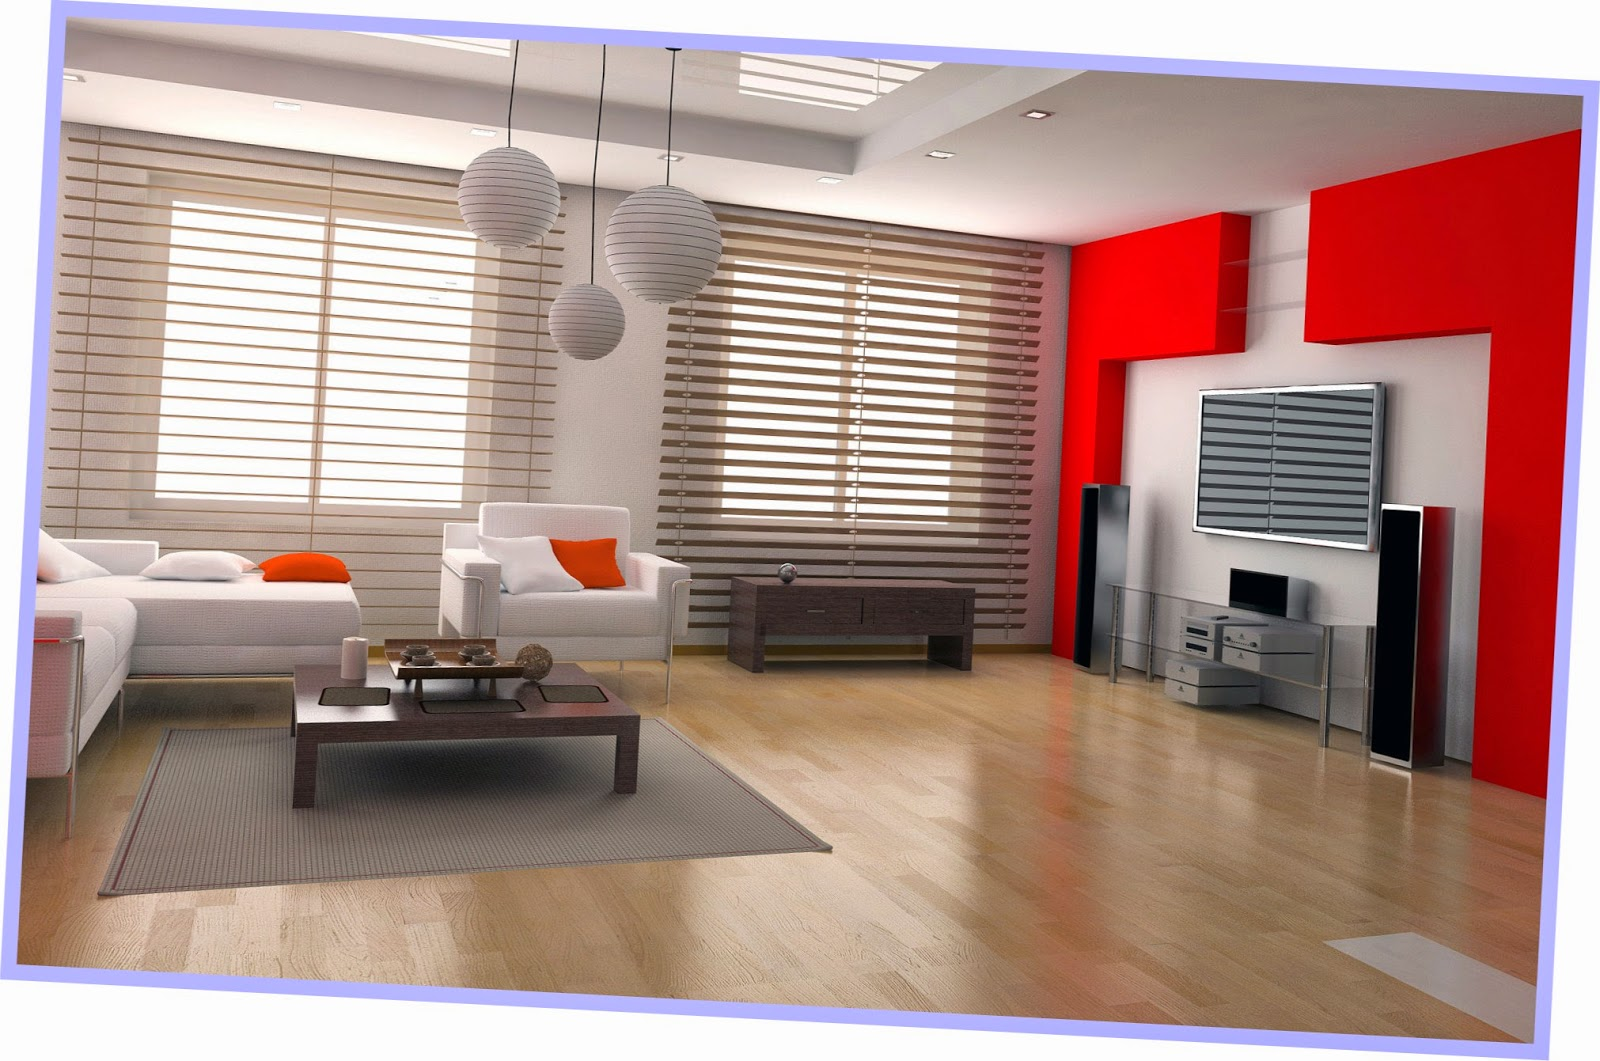 House designers salas modenas sexy for you mei 2015 - Design interior home with ease ...